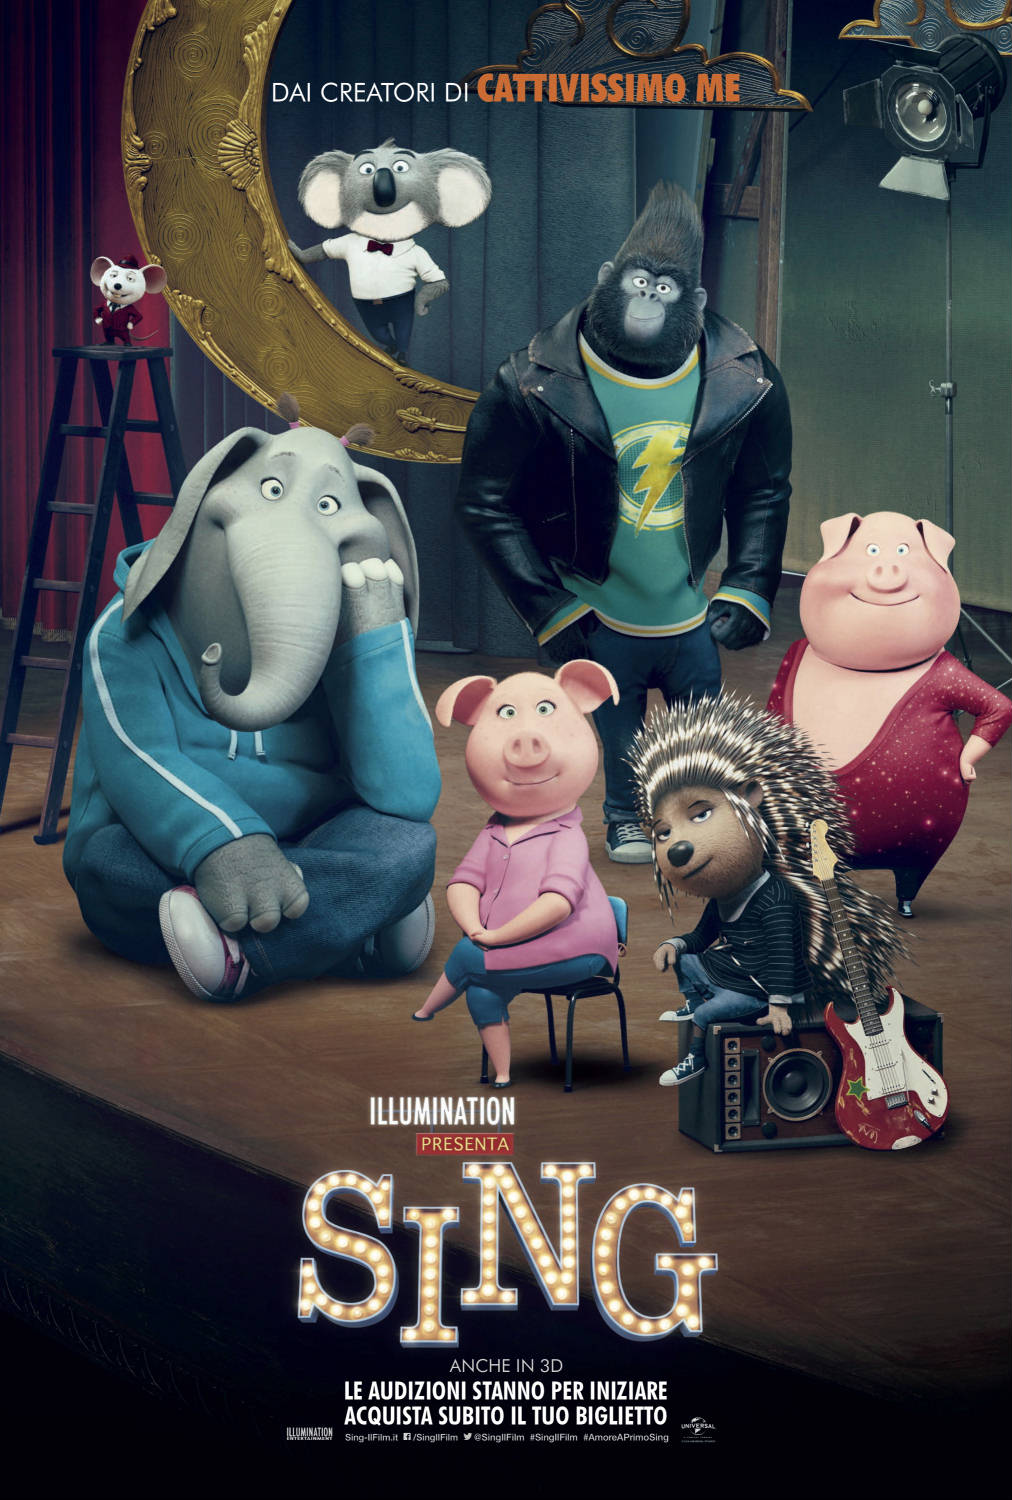 Sing - animazione Illumination - Contest - Buster Moon koala - Miss Karen Crawly lucertola - Gunter - Rosita - Ash - Mike - Johnny - Nana - cartone animato 2016 cult funny special